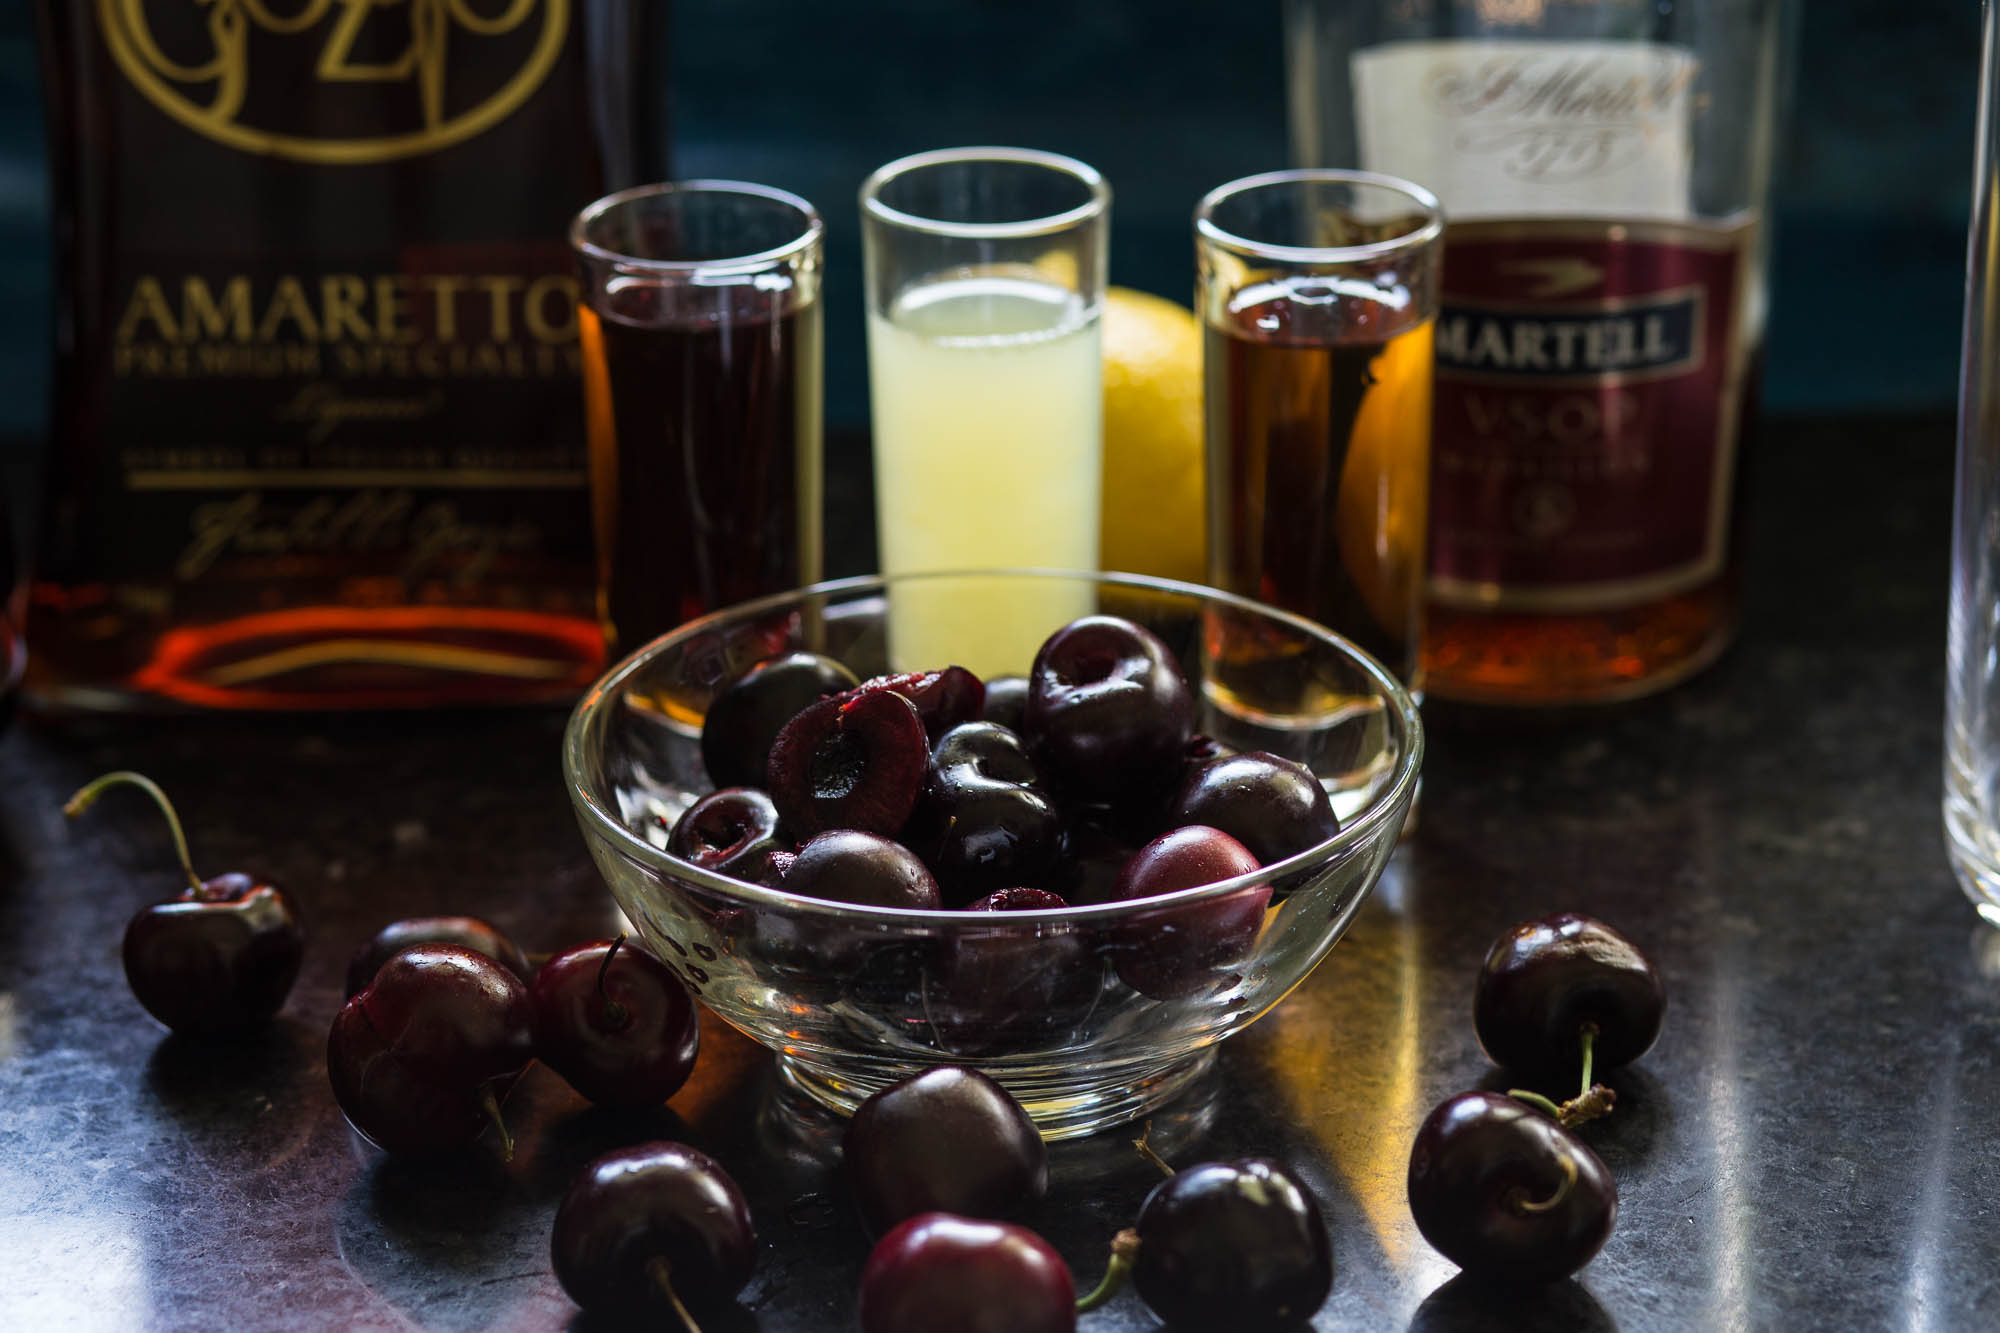 Cherry Amaretto Sidecar Cocktail ingredients|www.recipefiction.com